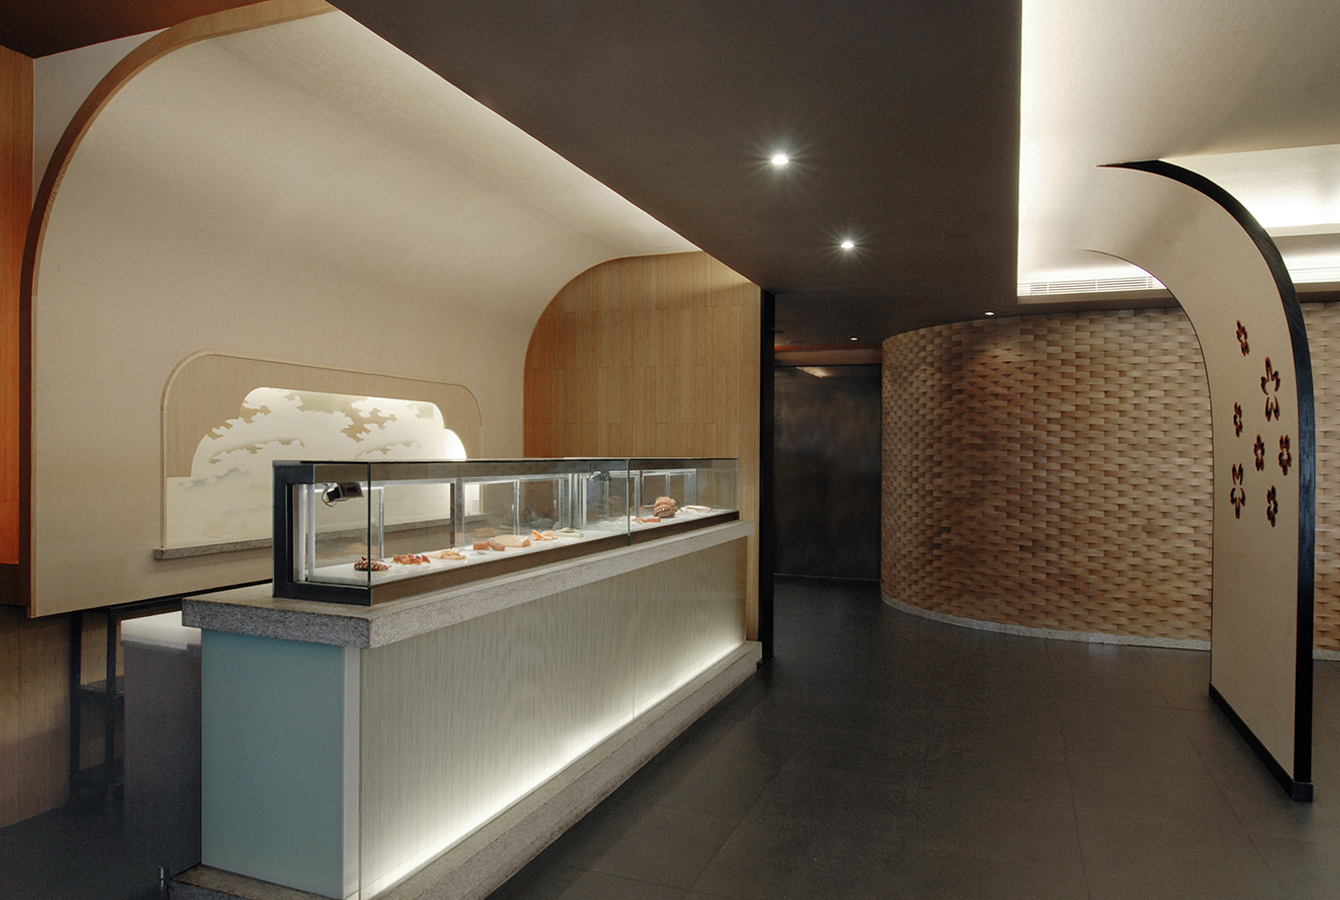 The Design Reflects Theme As Implied By Its Name Shiki Meaning Four Seasons In Japanese To Celebrate Time Honored Culinary